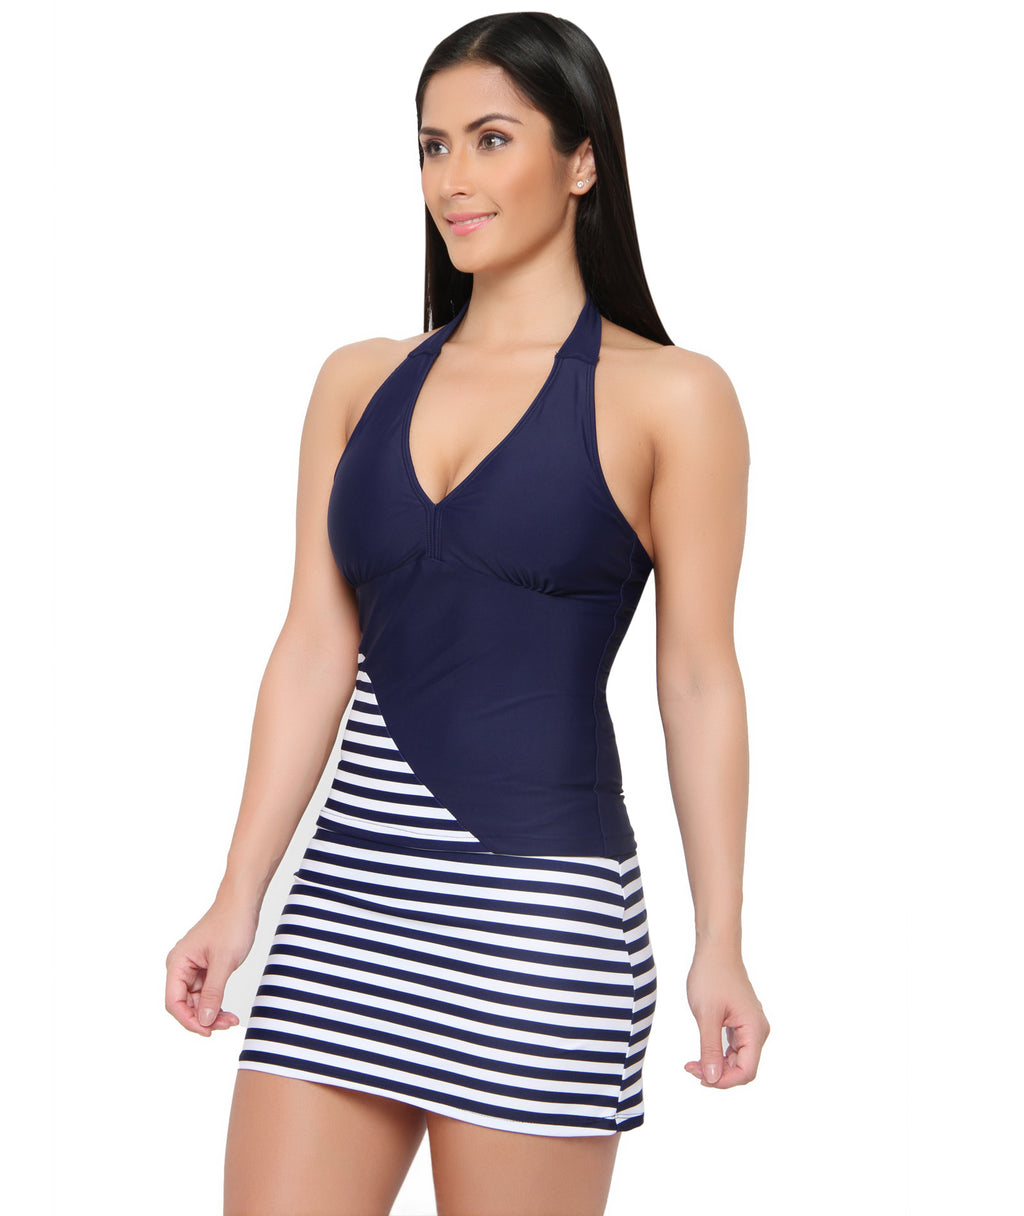 Ready to Sail Skirted Tankini Set (UK 8 Only)